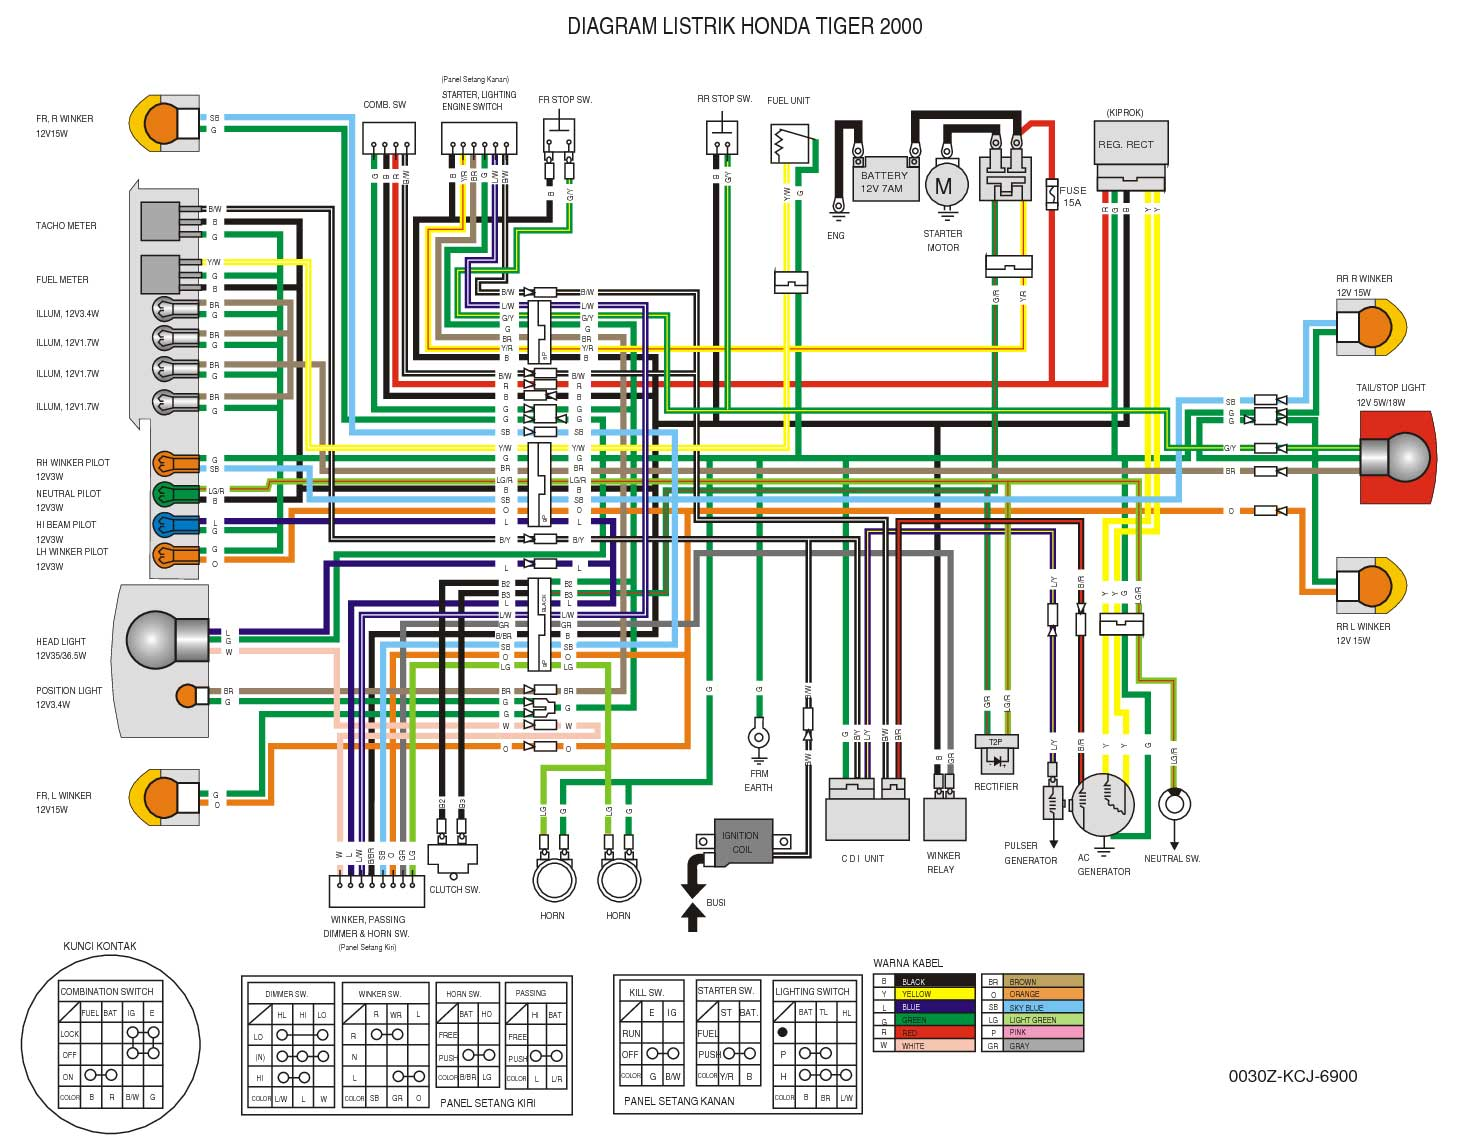 Wiring Diagram Kelistrikan Mobil Great Installation Of Wiring